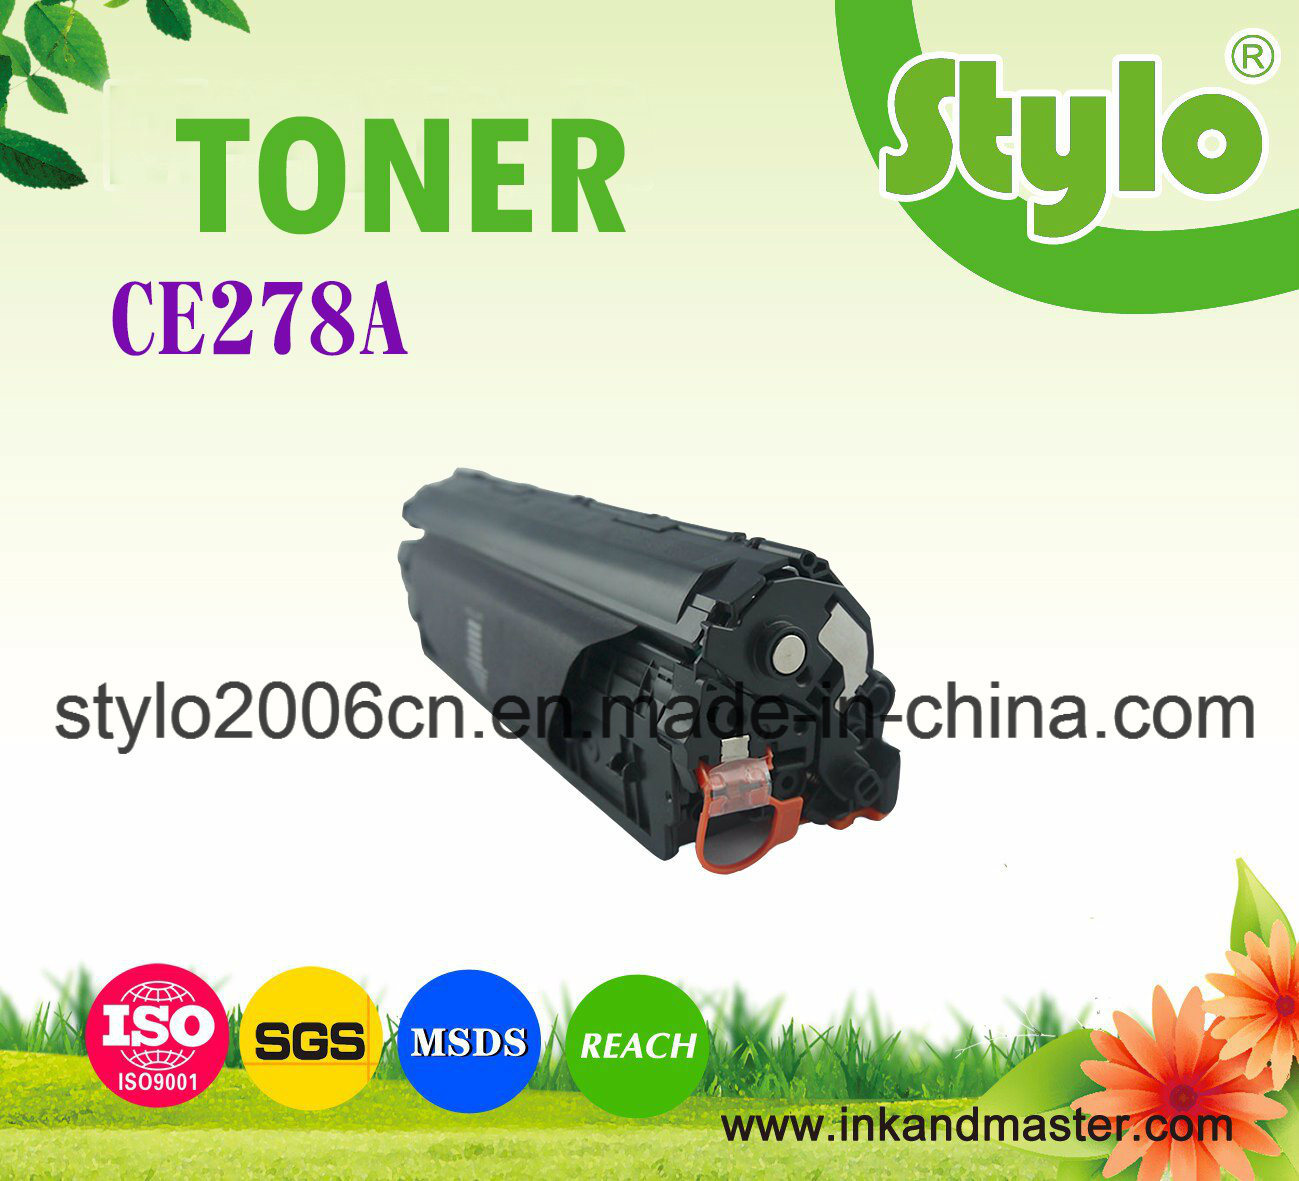 Toner Cartridge Ce278A for Use HP Laserjet Printer